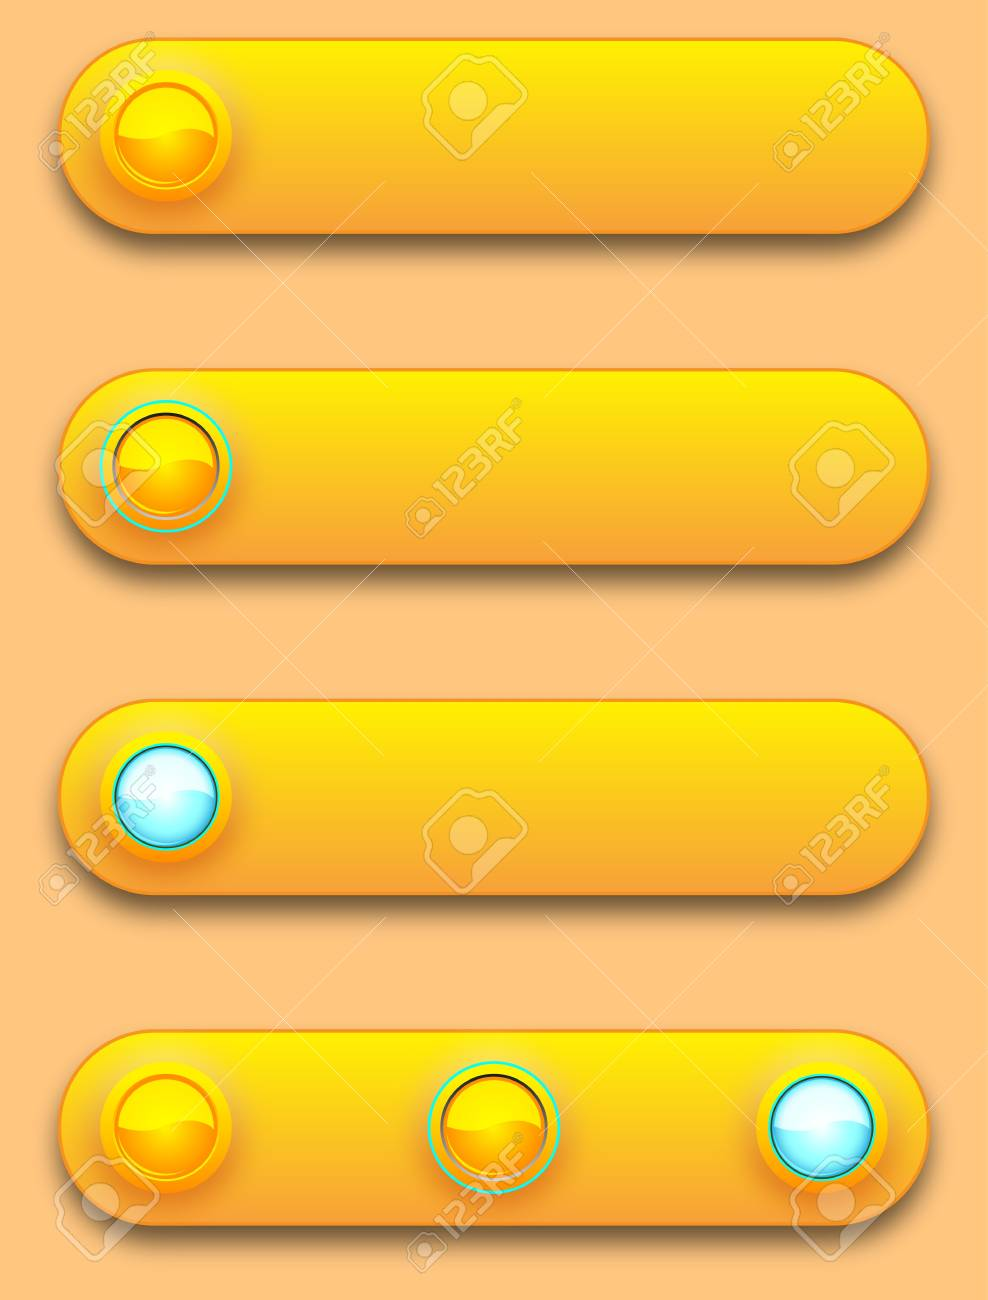 Long button, off, selected and pushed. Stock Vector - 12391677